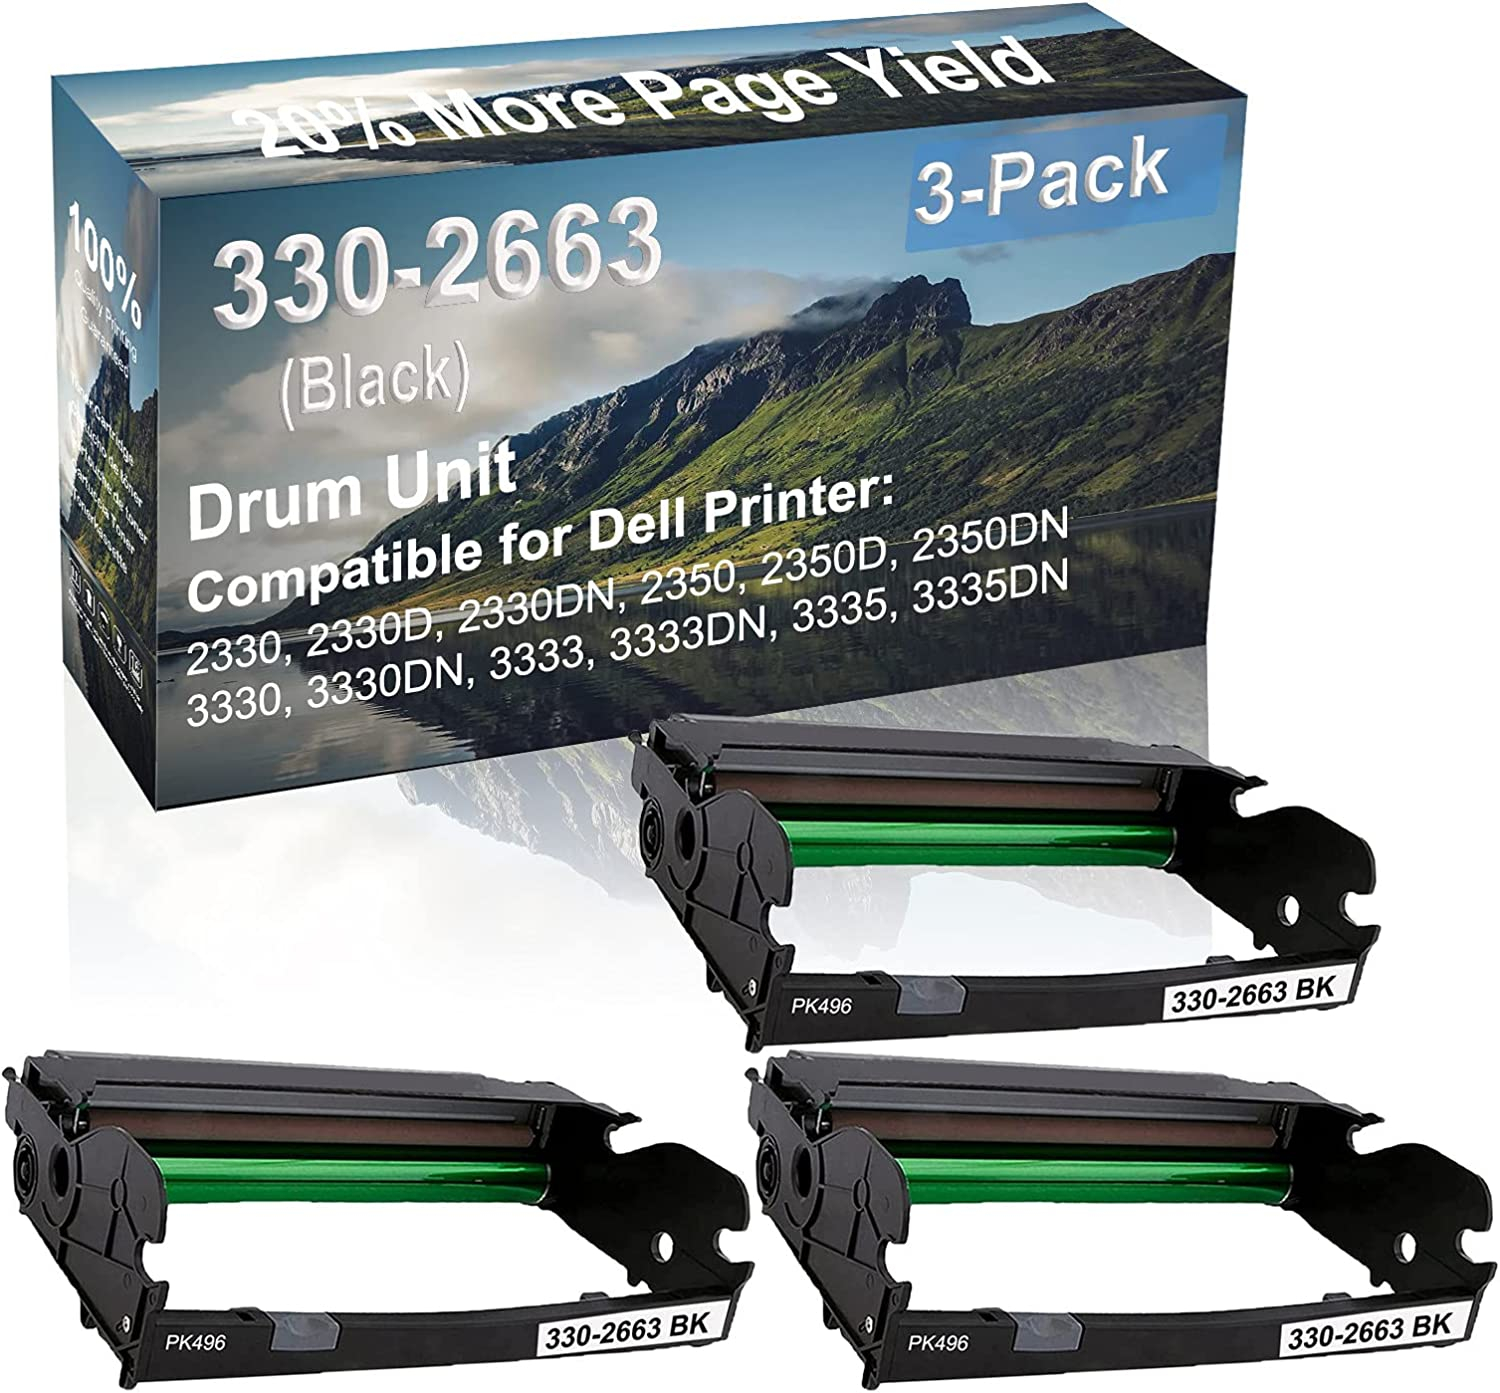 3-Pack Compatible Drum Unit (Black) Replacement for Dell 330-2663 PK496 Drum Kit use for Dell 3333, 3333DN, 3335, 3335DN Printer